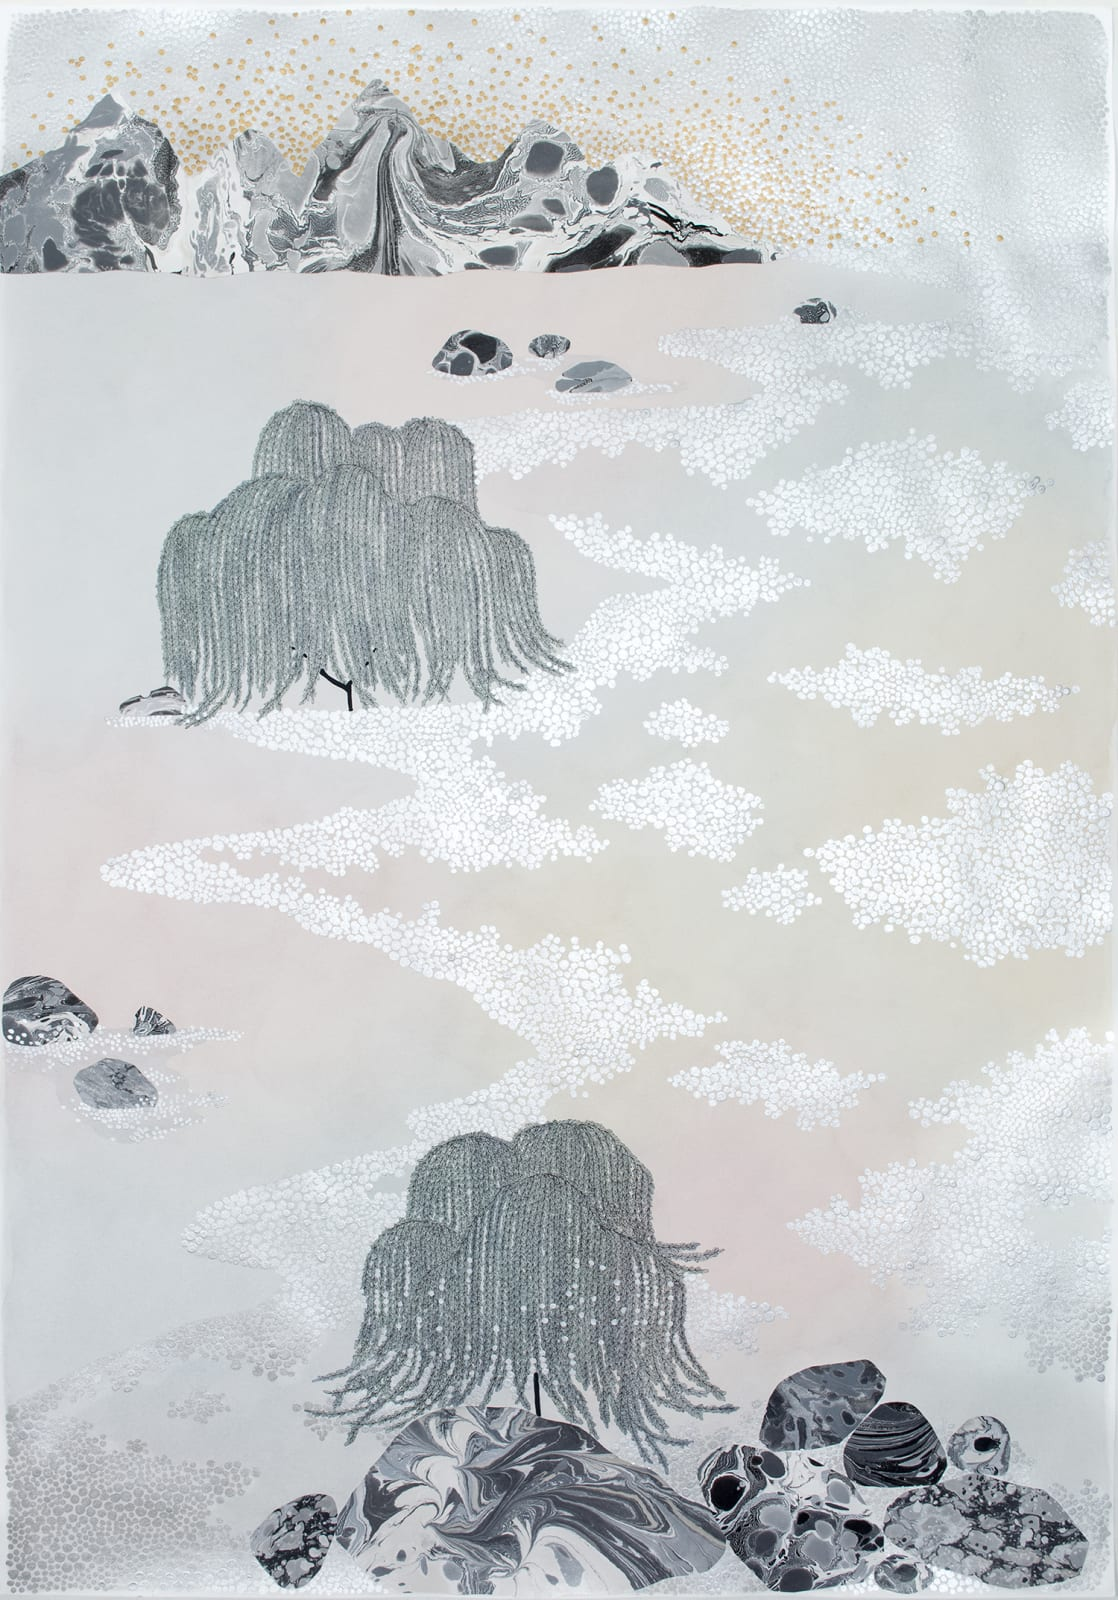 Crystal Liu, going places (weeping willows), lulled, 2018